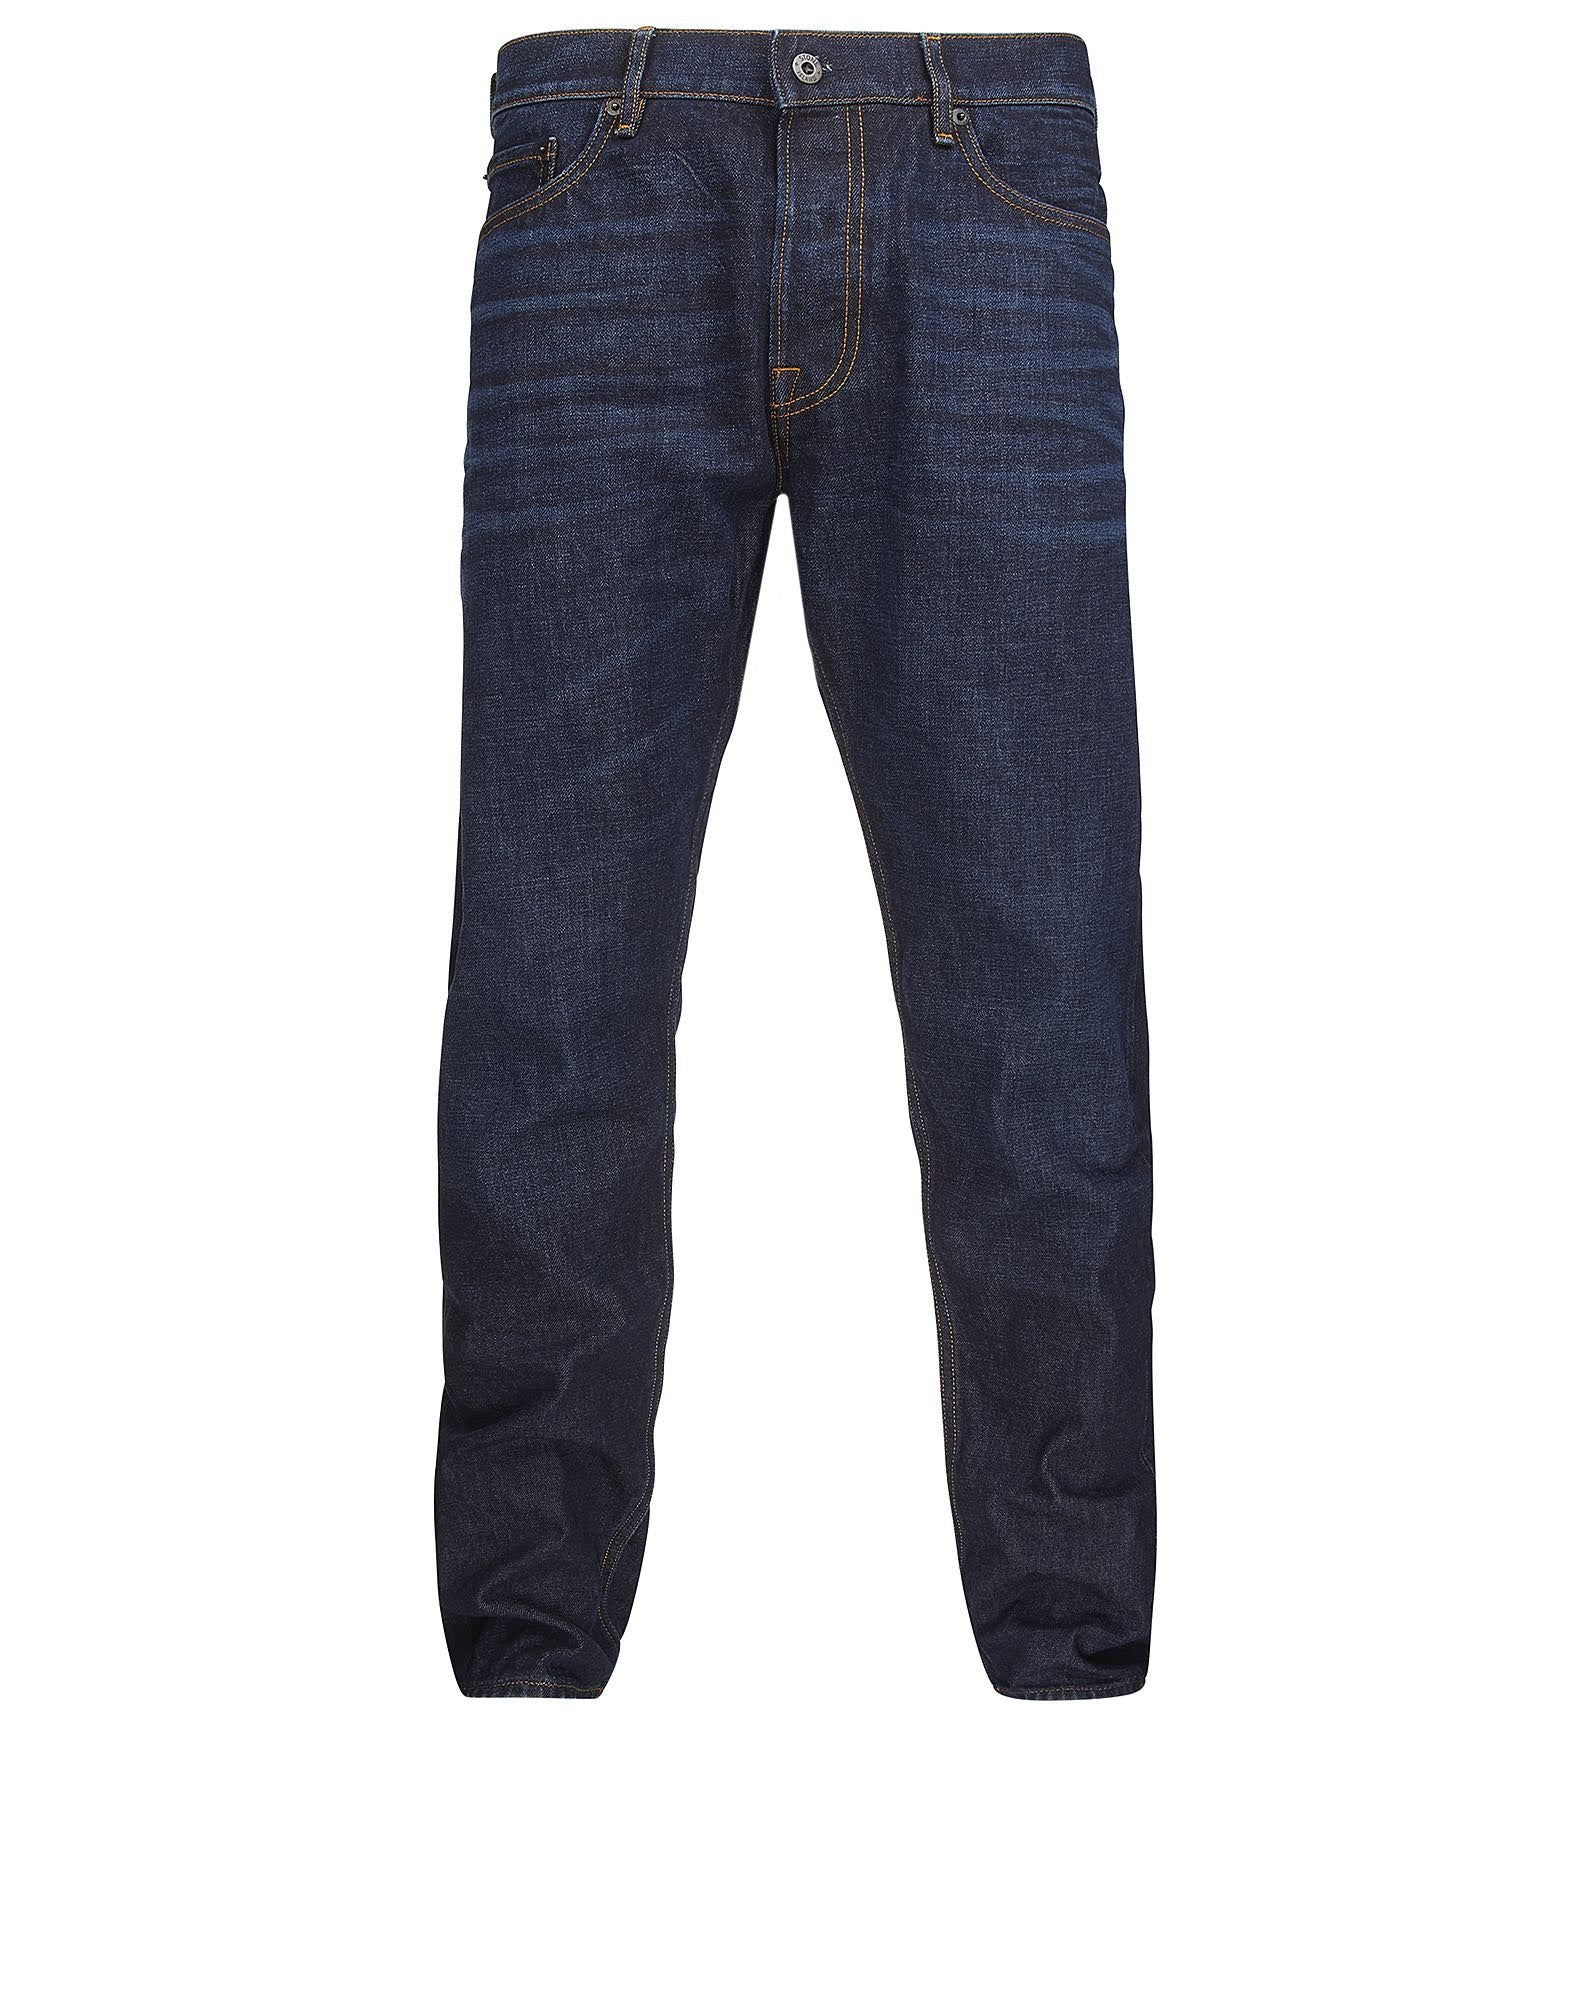 J4BI2 RE-T_VISC Jeans in Blue